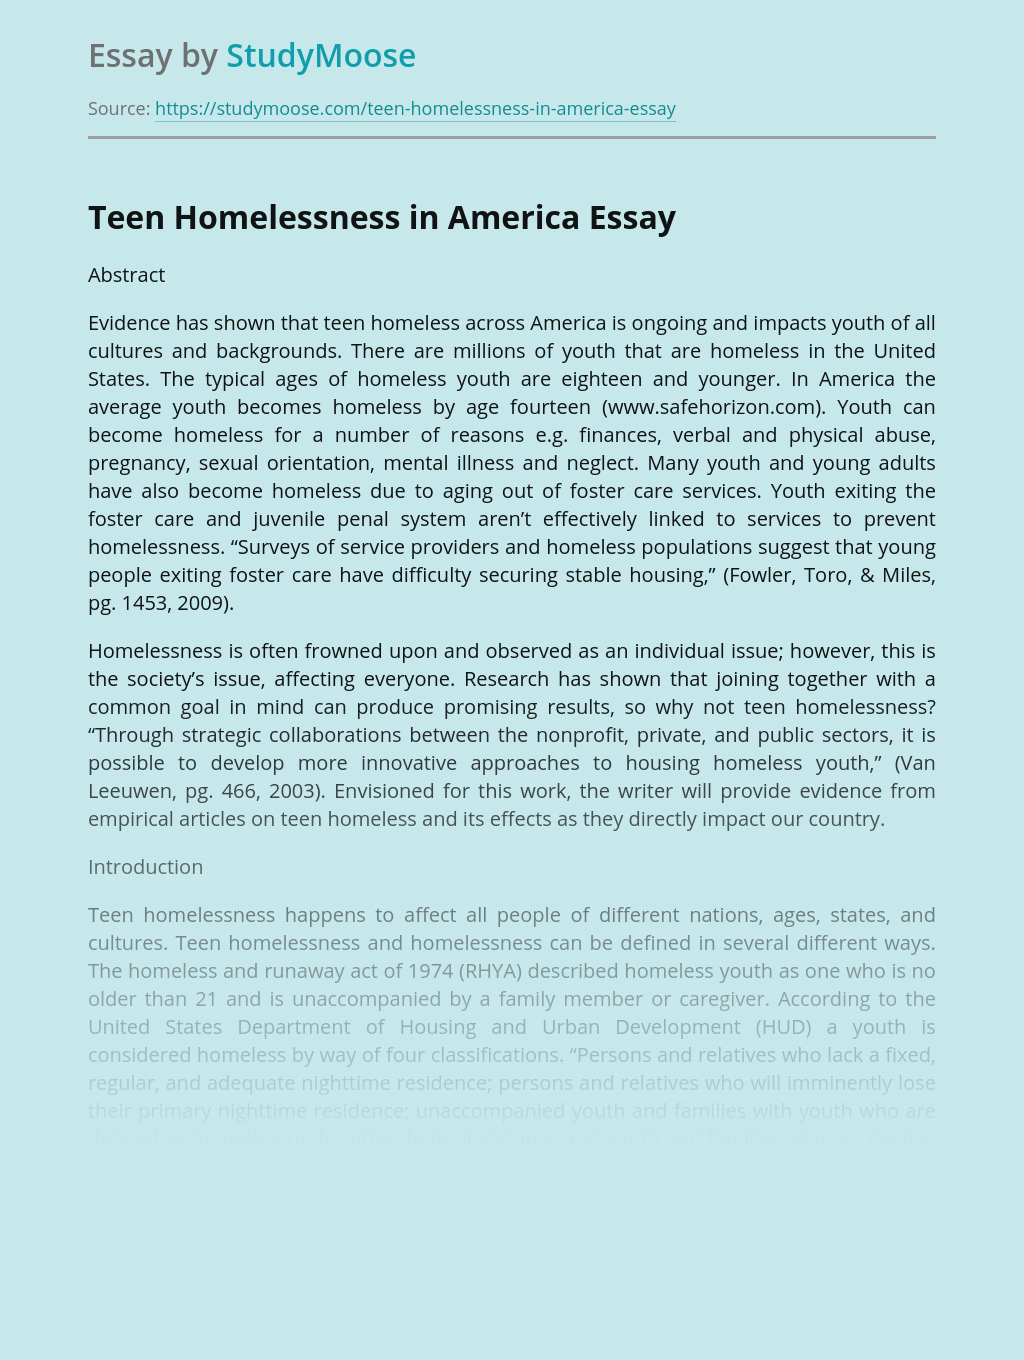 Teen Homelessness in America